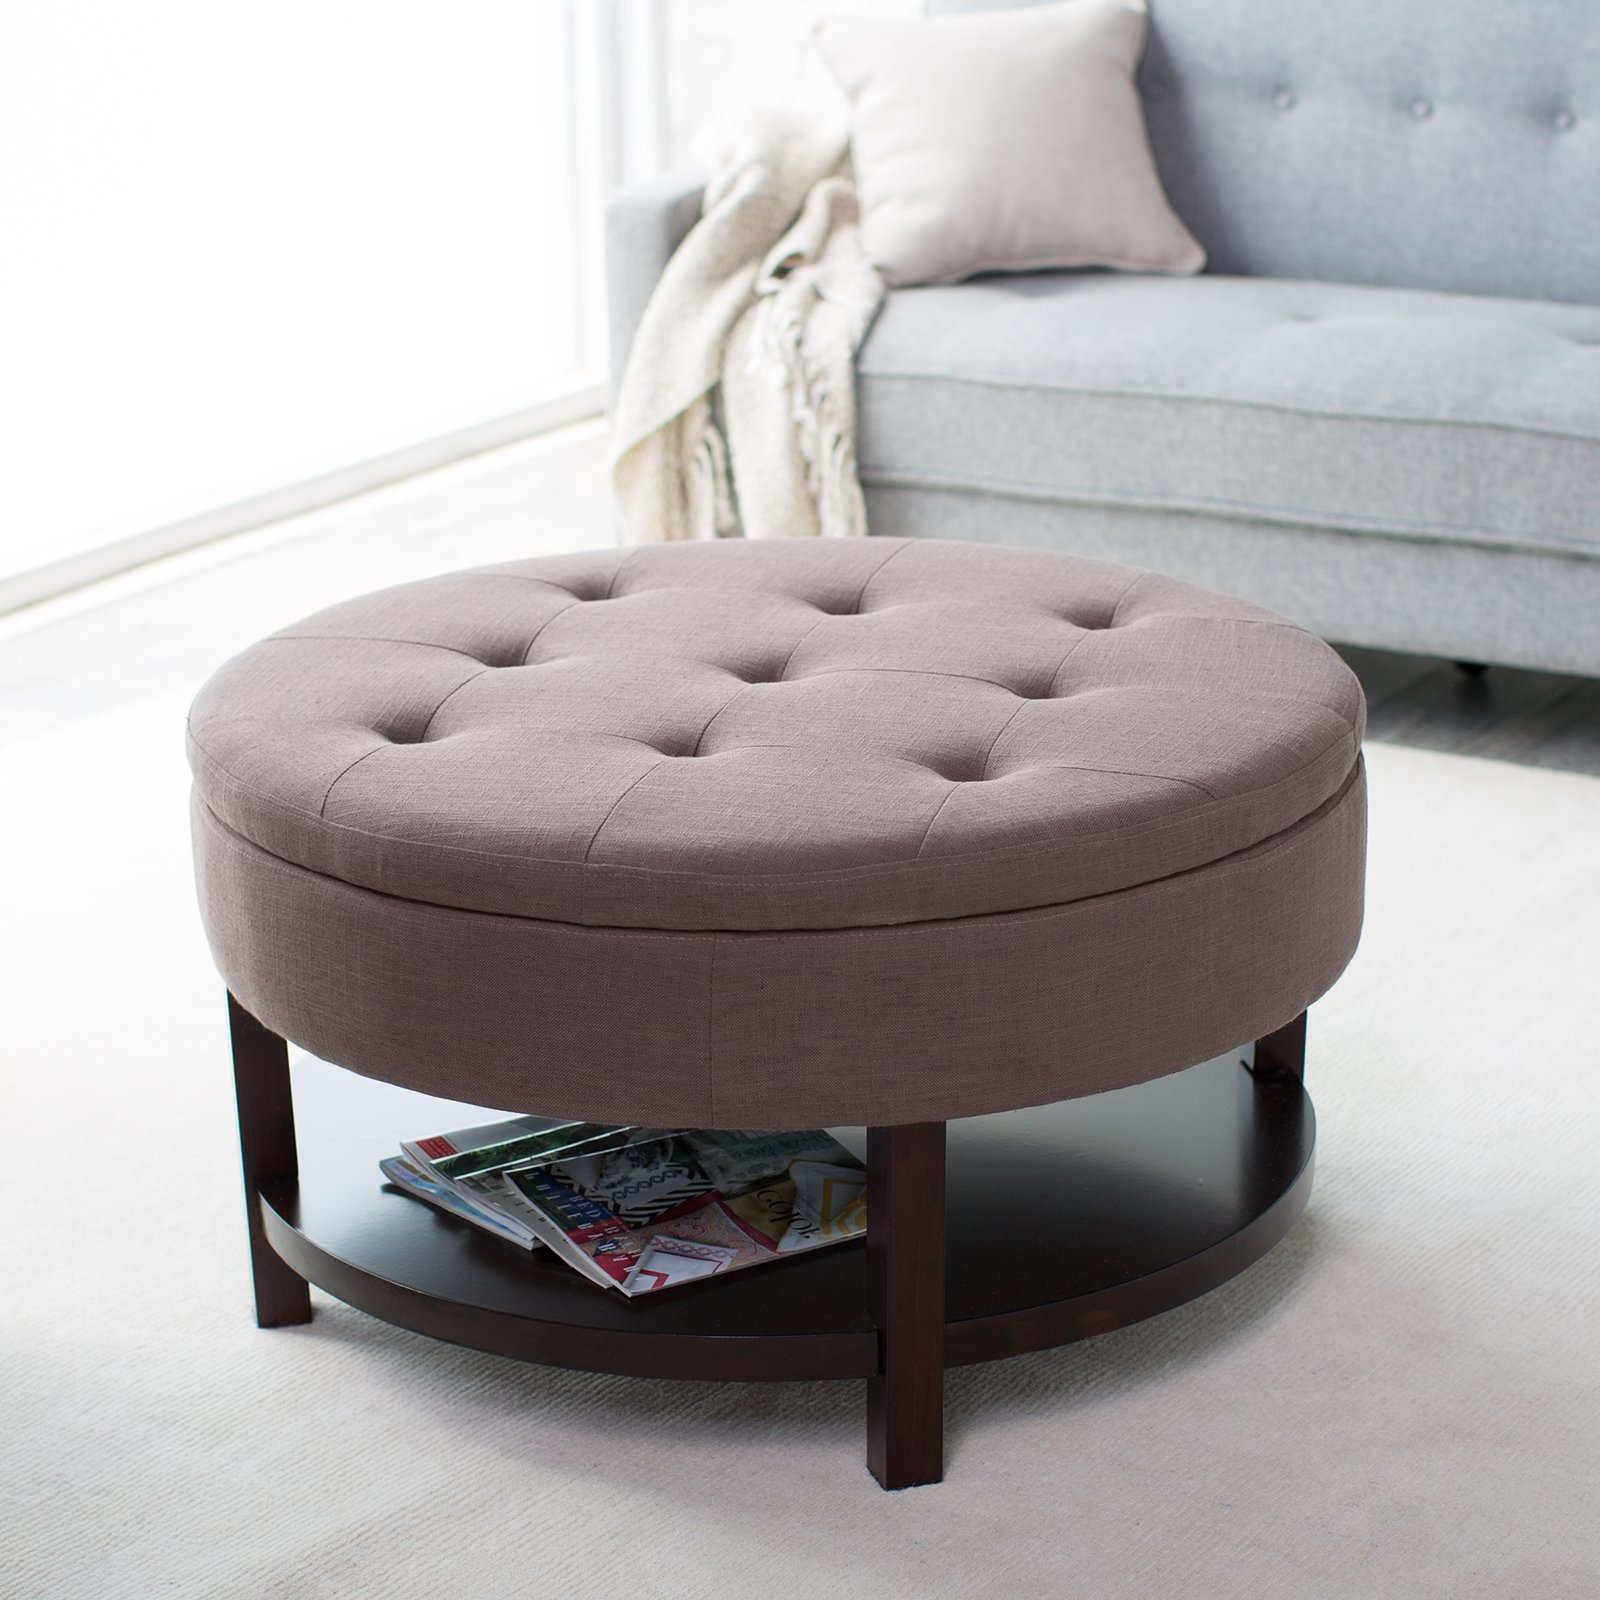 inexpensive coffee tables 02